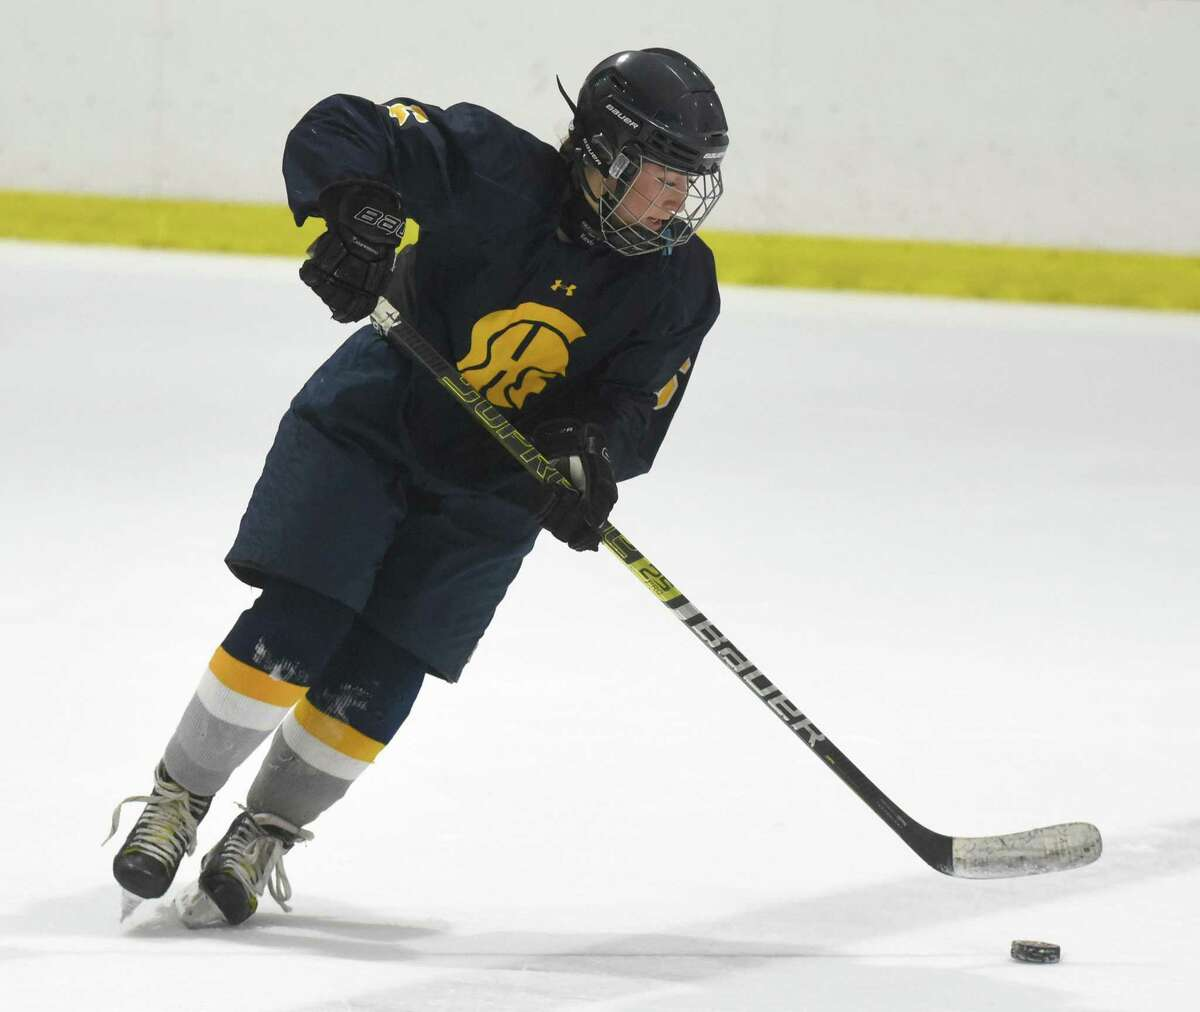 Simsbury's Anna Melanson (6) controls the puck during a girls ice hockey game against New Canaan at the Darien Ice House on Dec. 10, 2019.